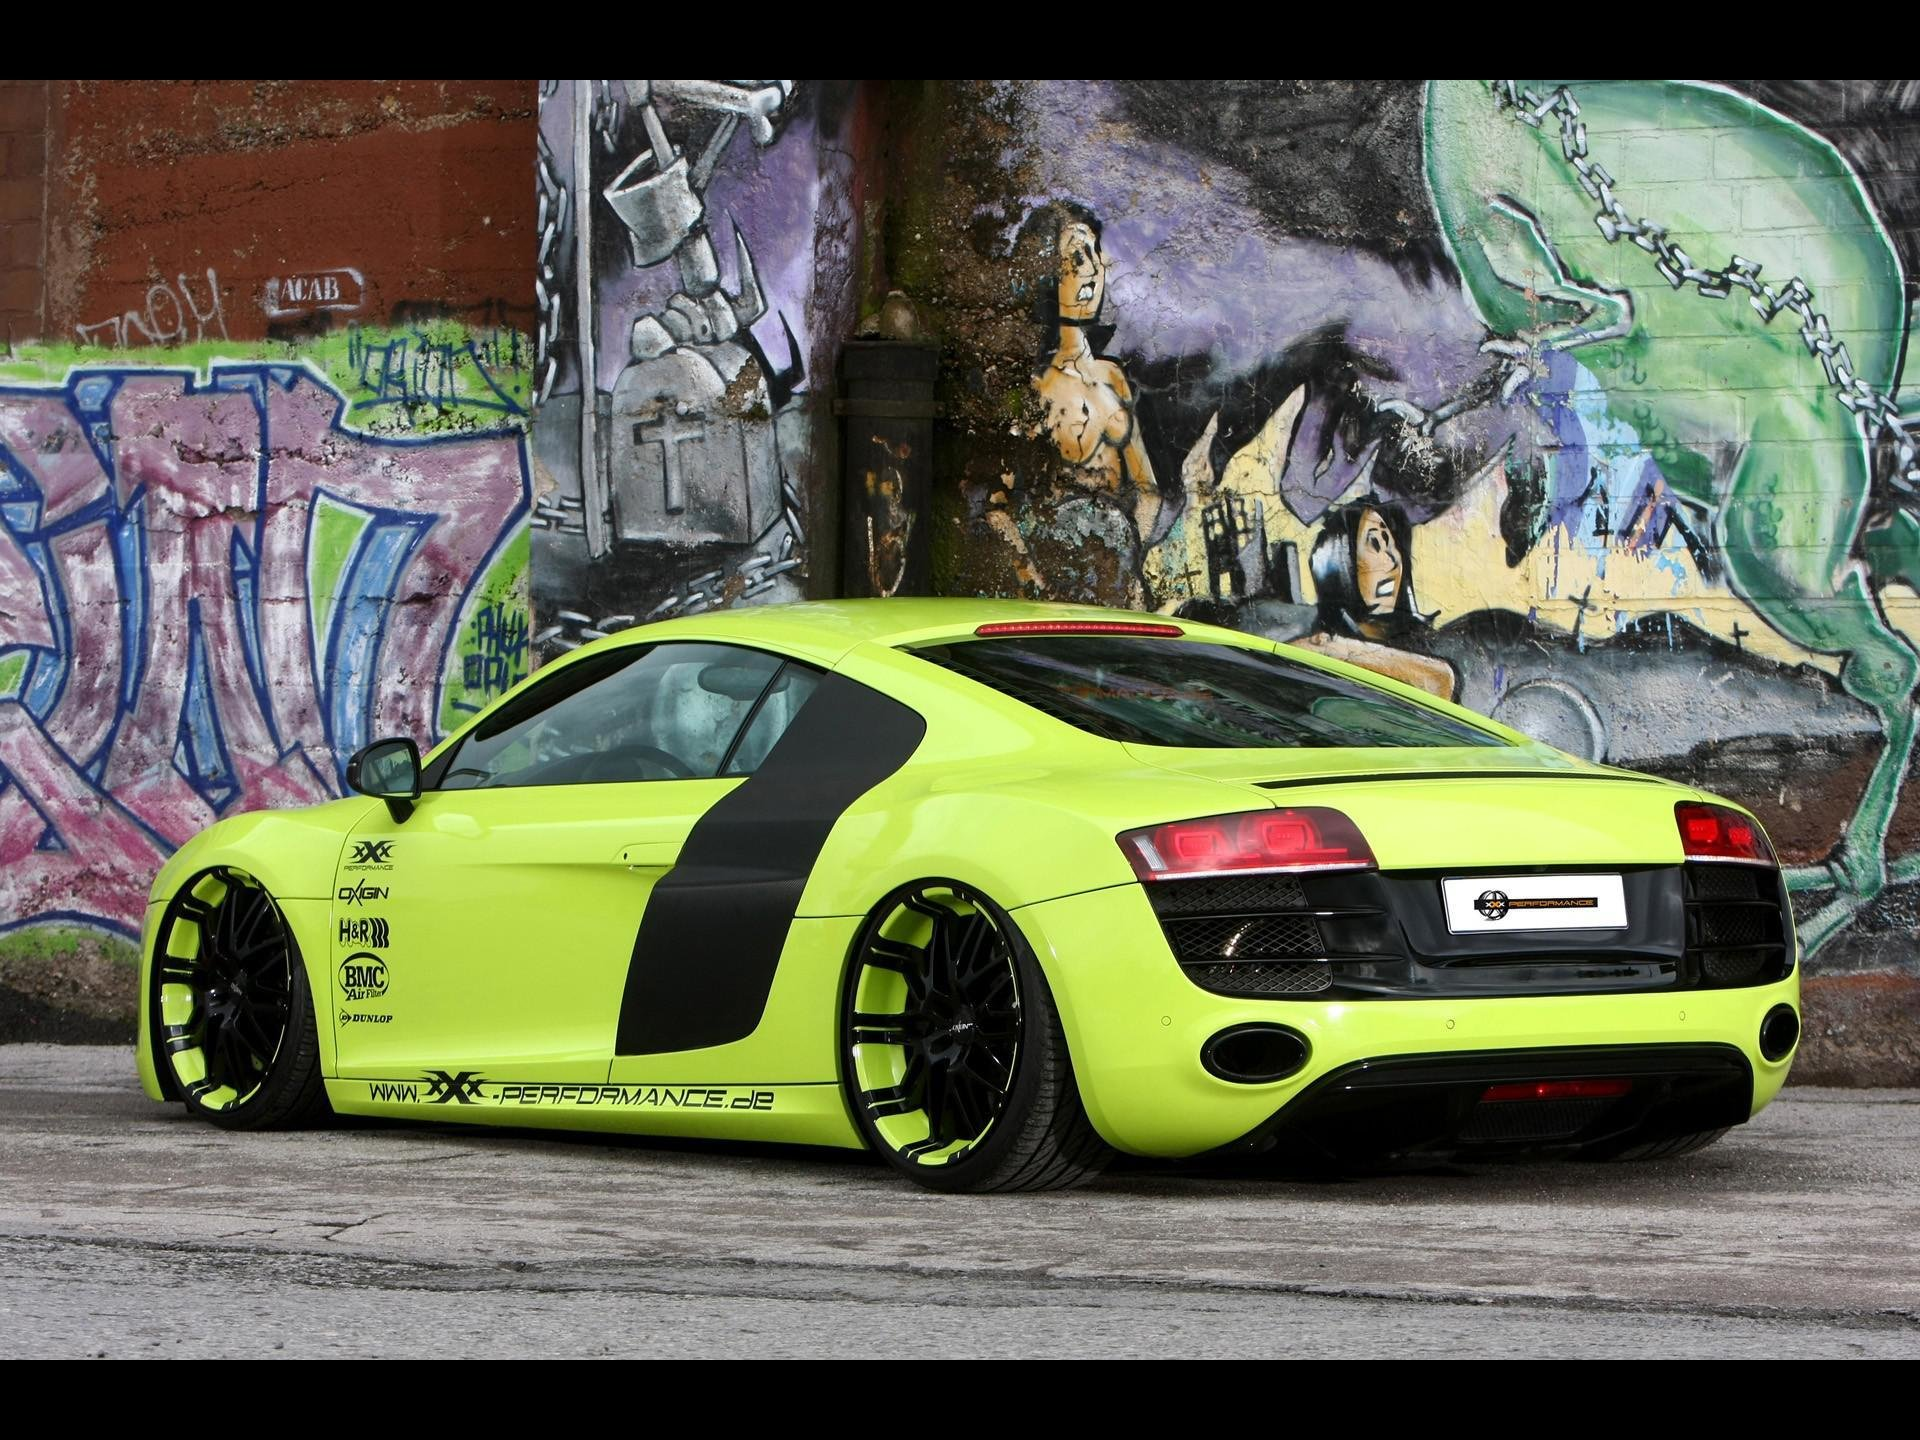 Latest Hd Cars Audi Supercars Tuning Performance R8 Static Green Free Download